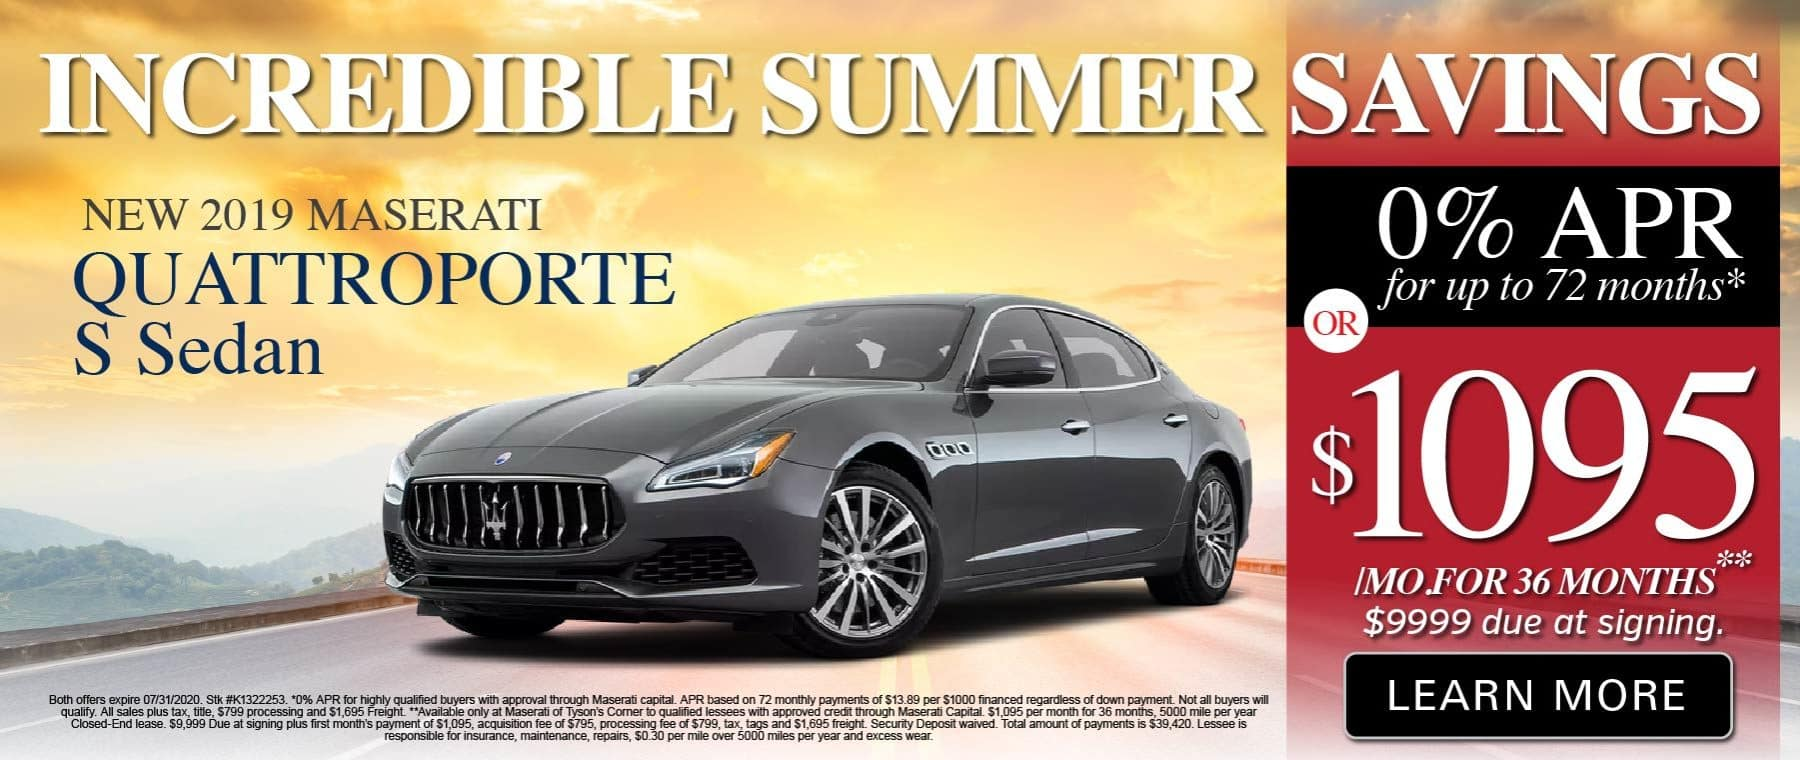 Incredible Summer Savings. 2019 Maserati Quattroporte S Sedan. O% APR for 72 months or $1095 a month for 36 months. Learn More.